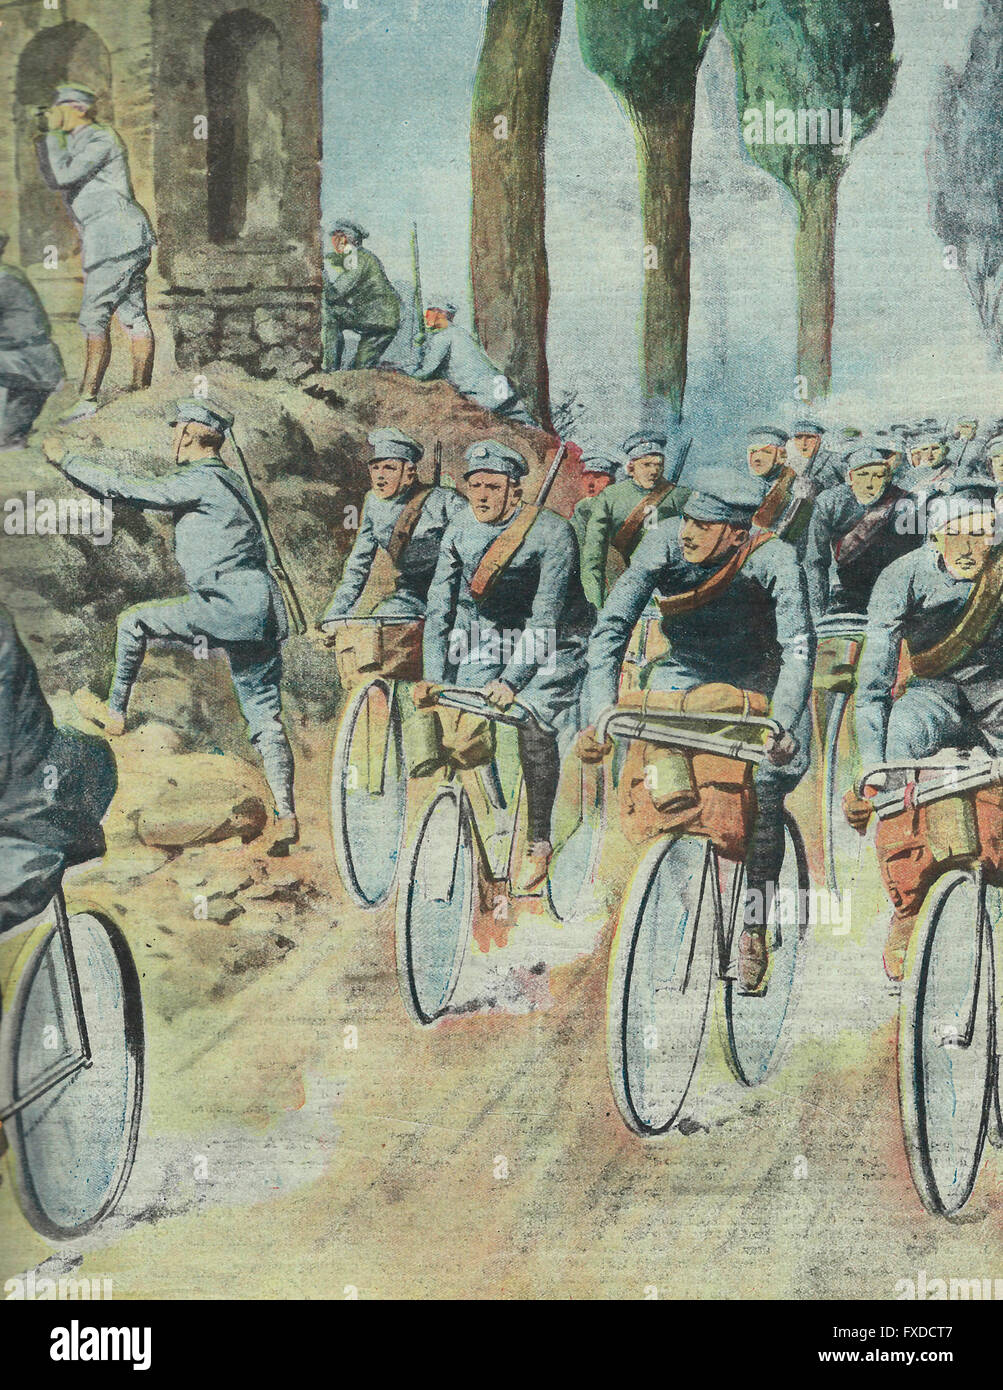 The cavalry maneuvers : the young volunteer cyclists , bold and tireless , radiate on the Lombard plain to spy on - Stock Image